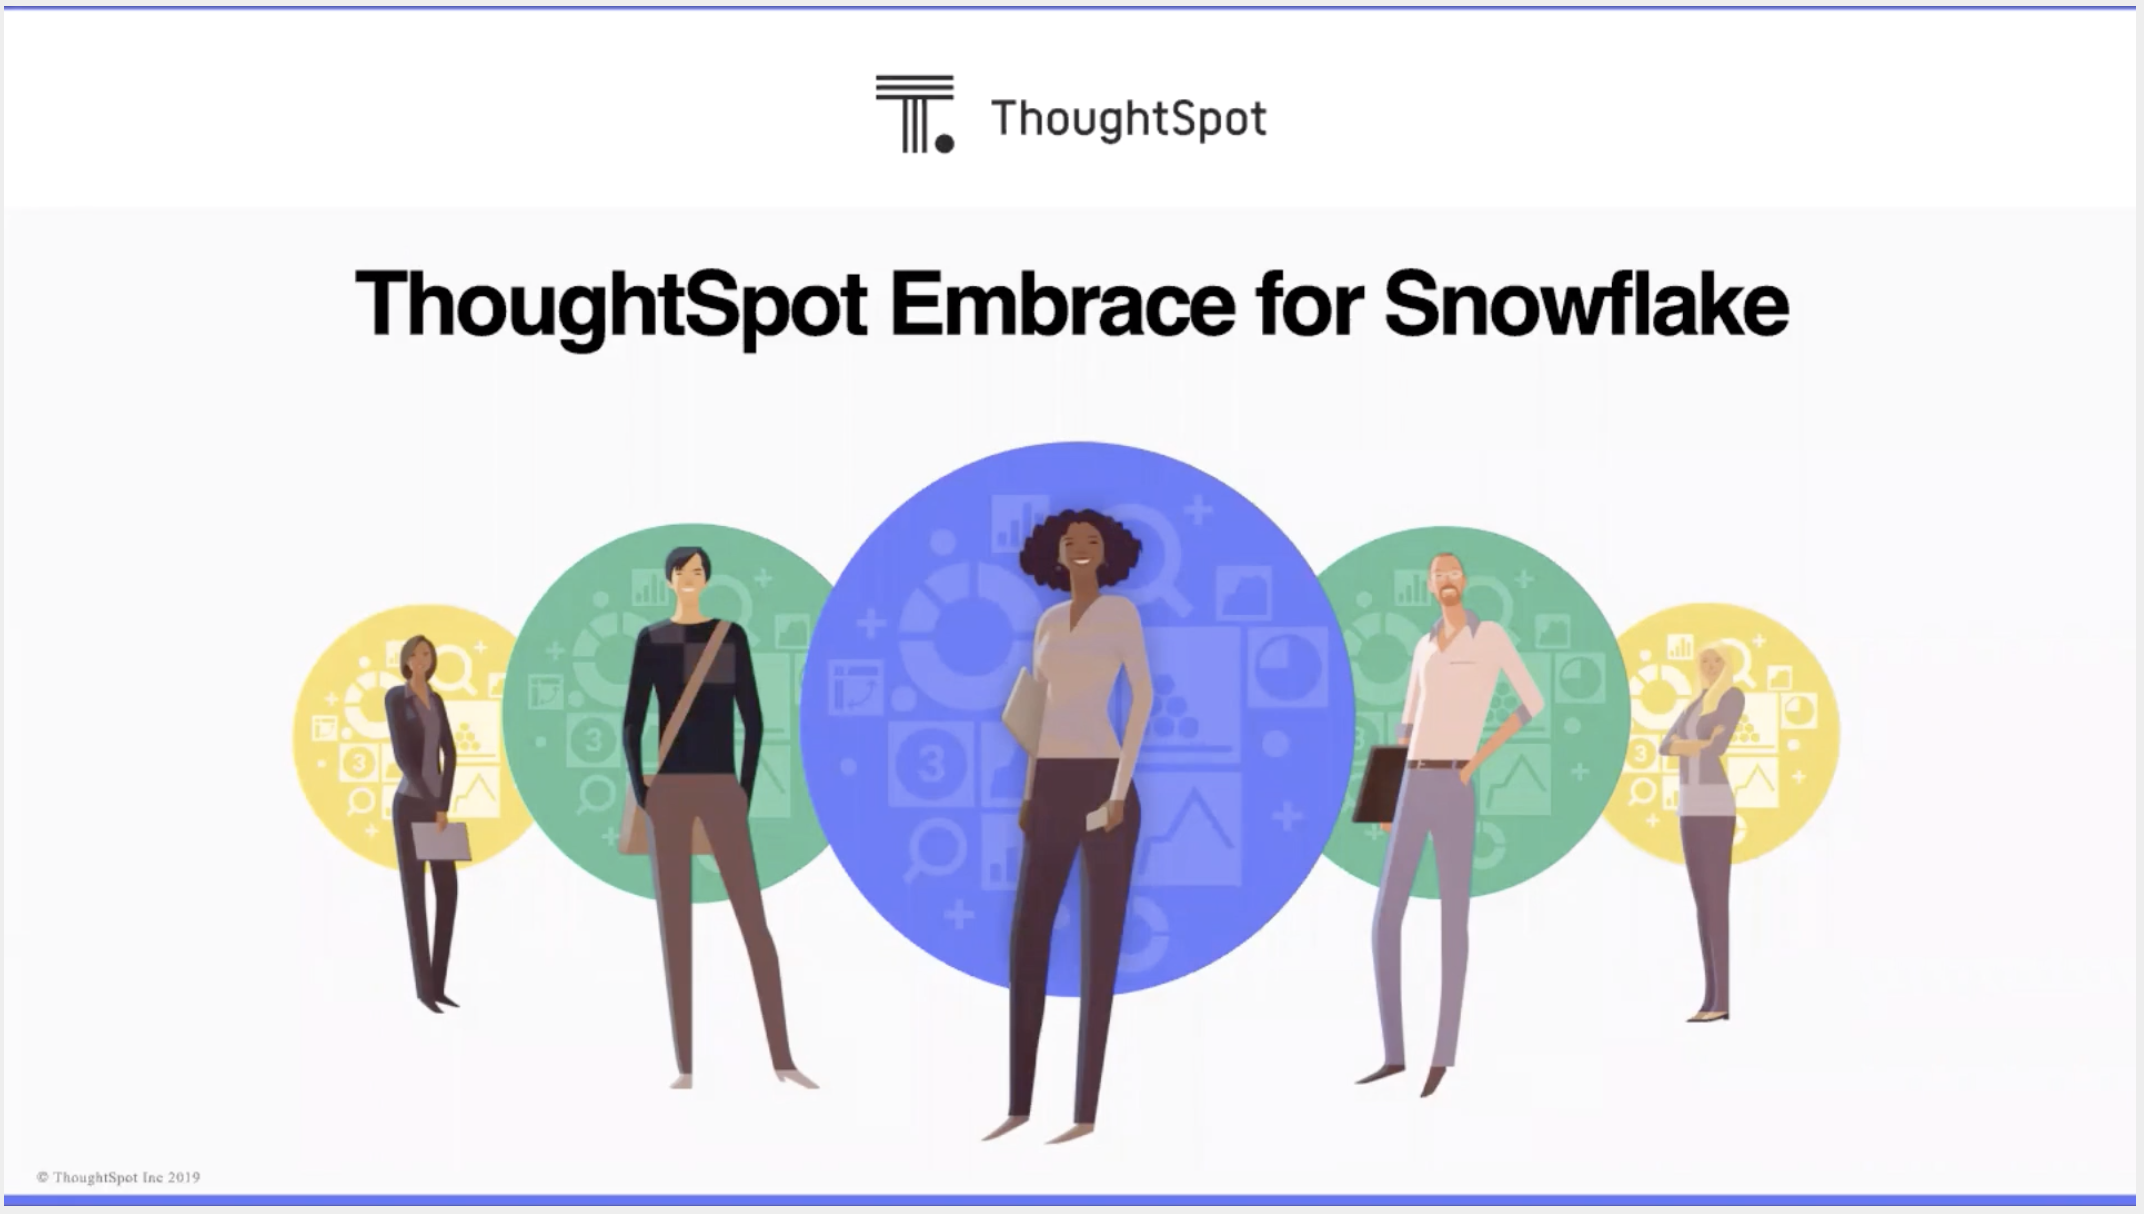 ThoughtSpot Embrace for Snowflake